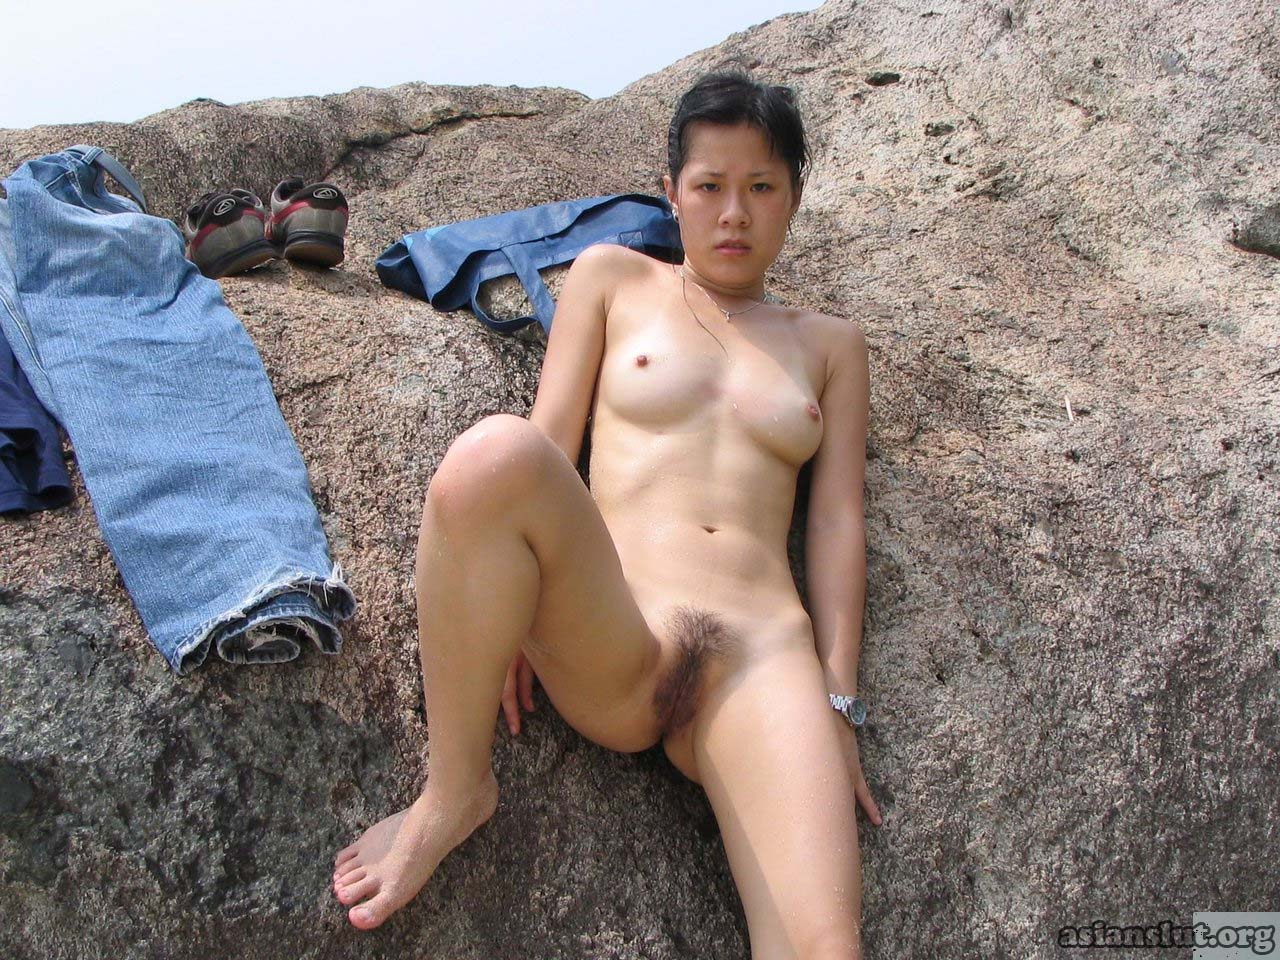 slutty asian lady expose her breast and hairy pussy outdoor slutty hairy pussy breast asian lady